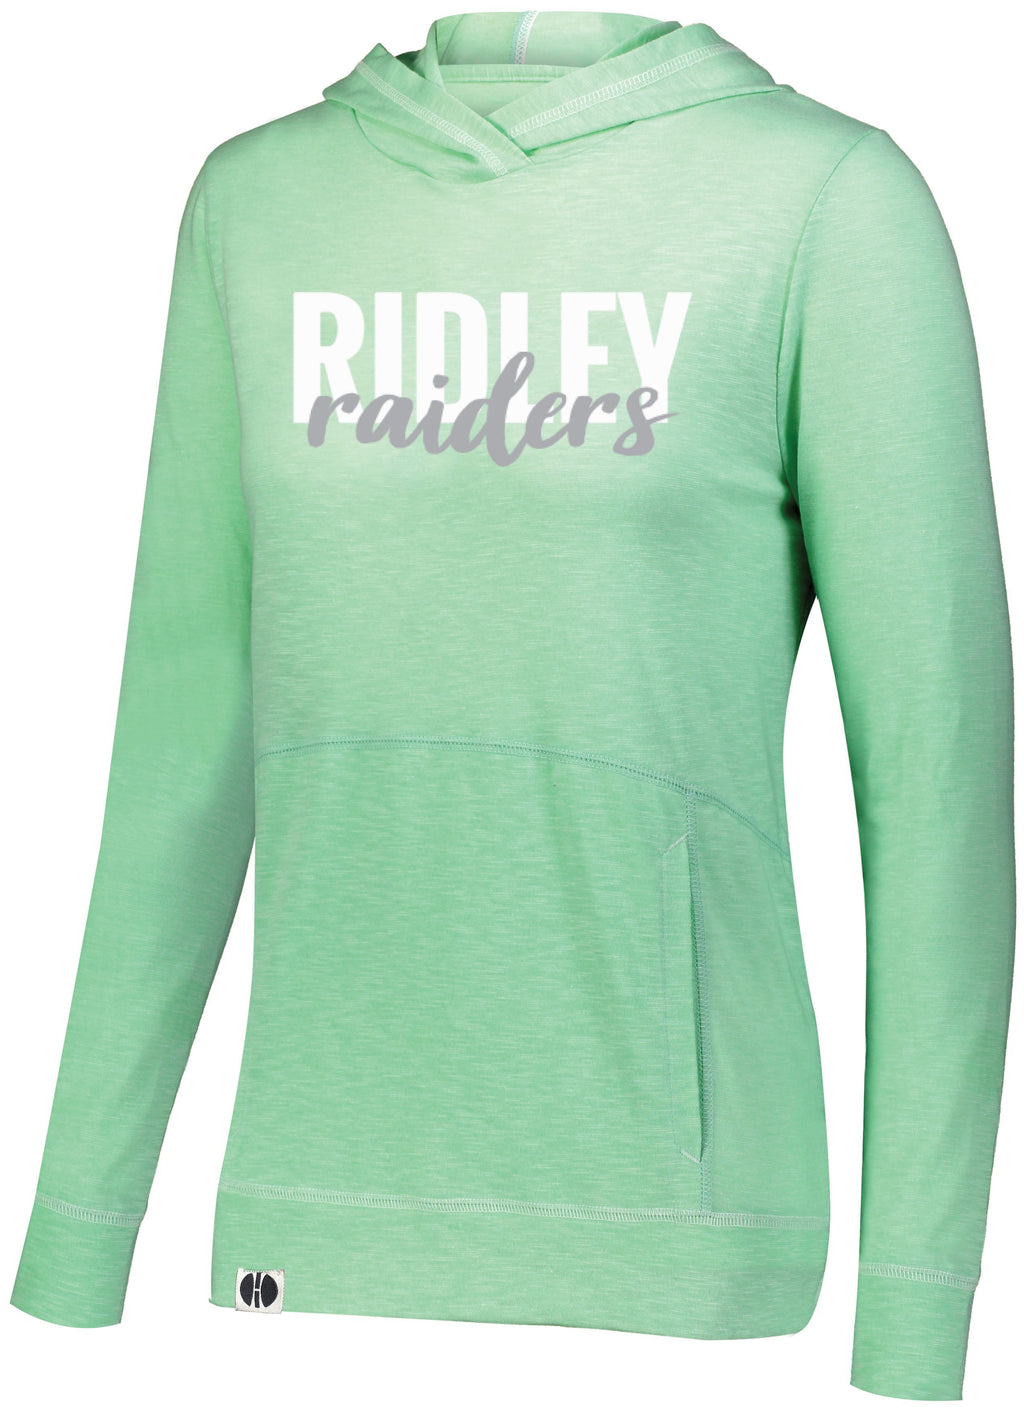 Women's Seafoam Green Ridley Raiders Holloway Hoodie